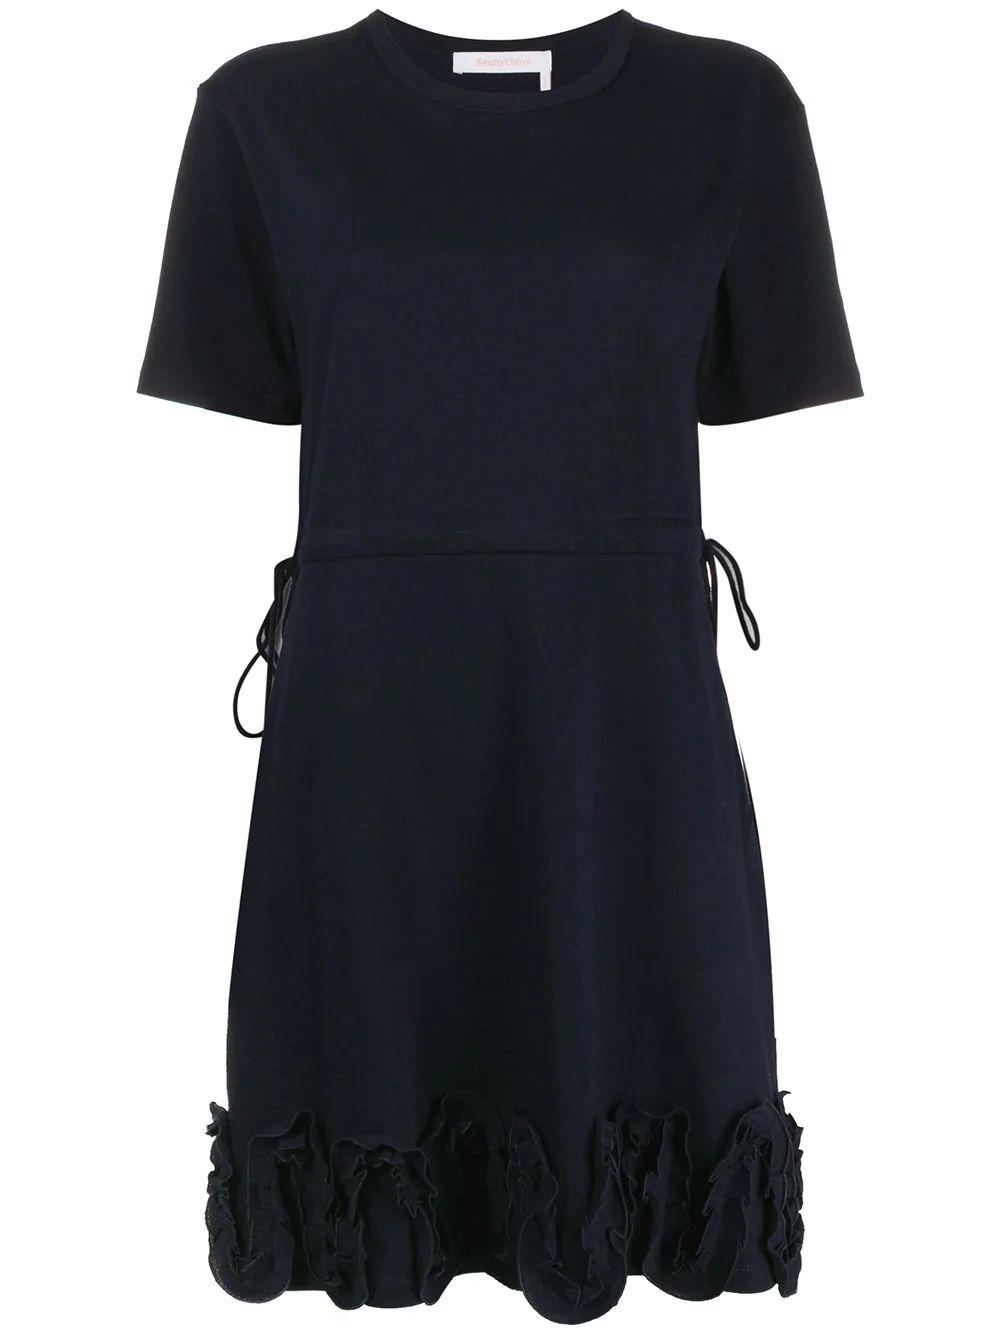 Short Sleeve Emb Tee Dress With Drawstring Waist